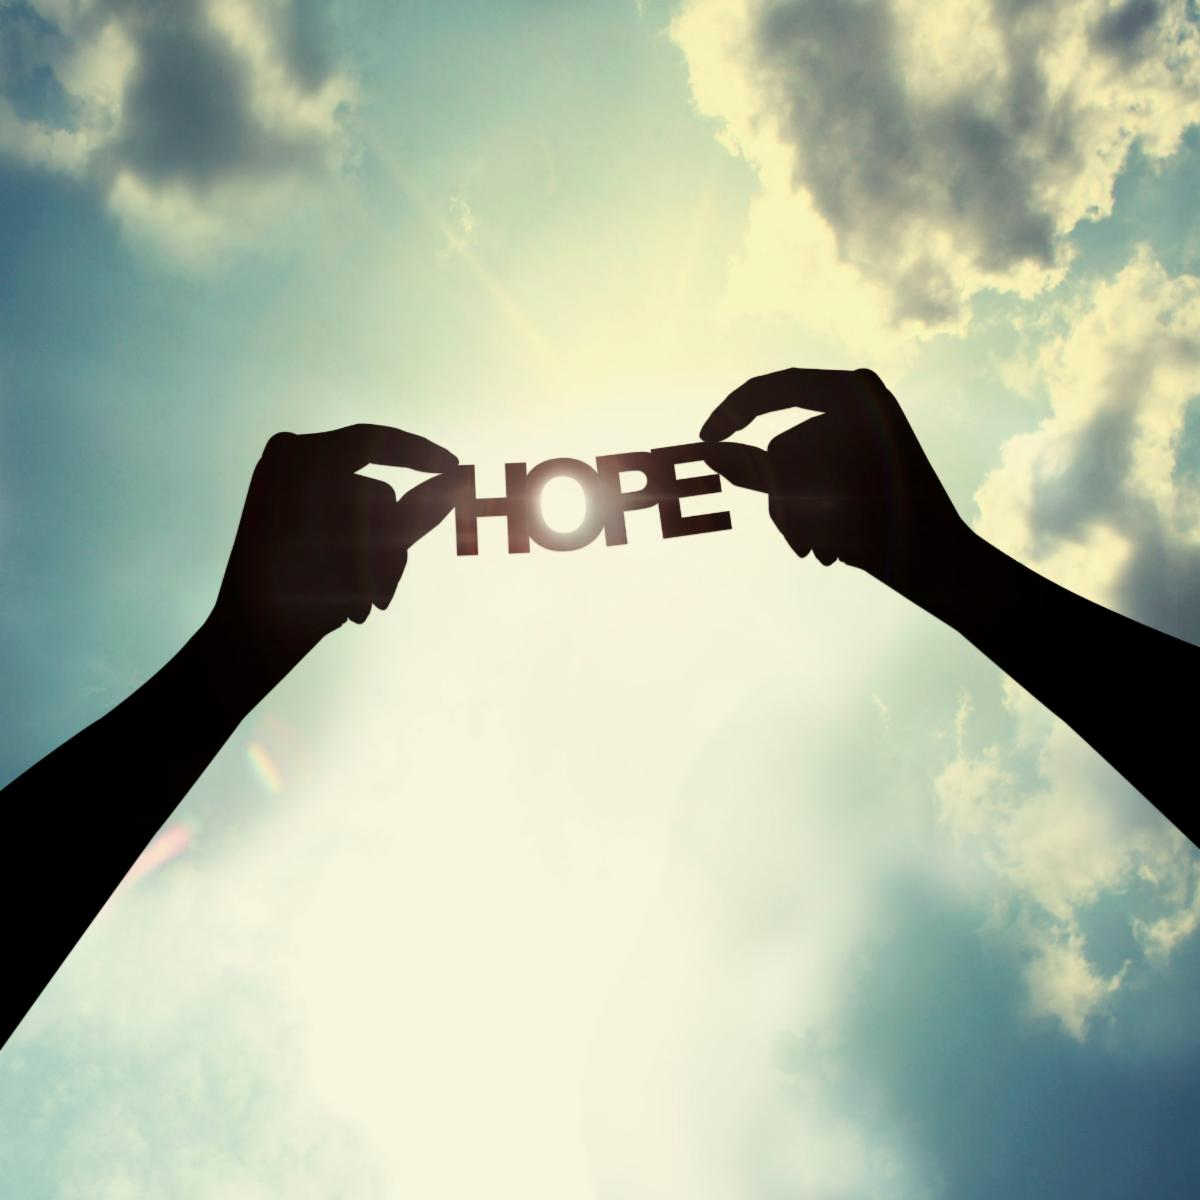 outline of word HOPE against bright sun